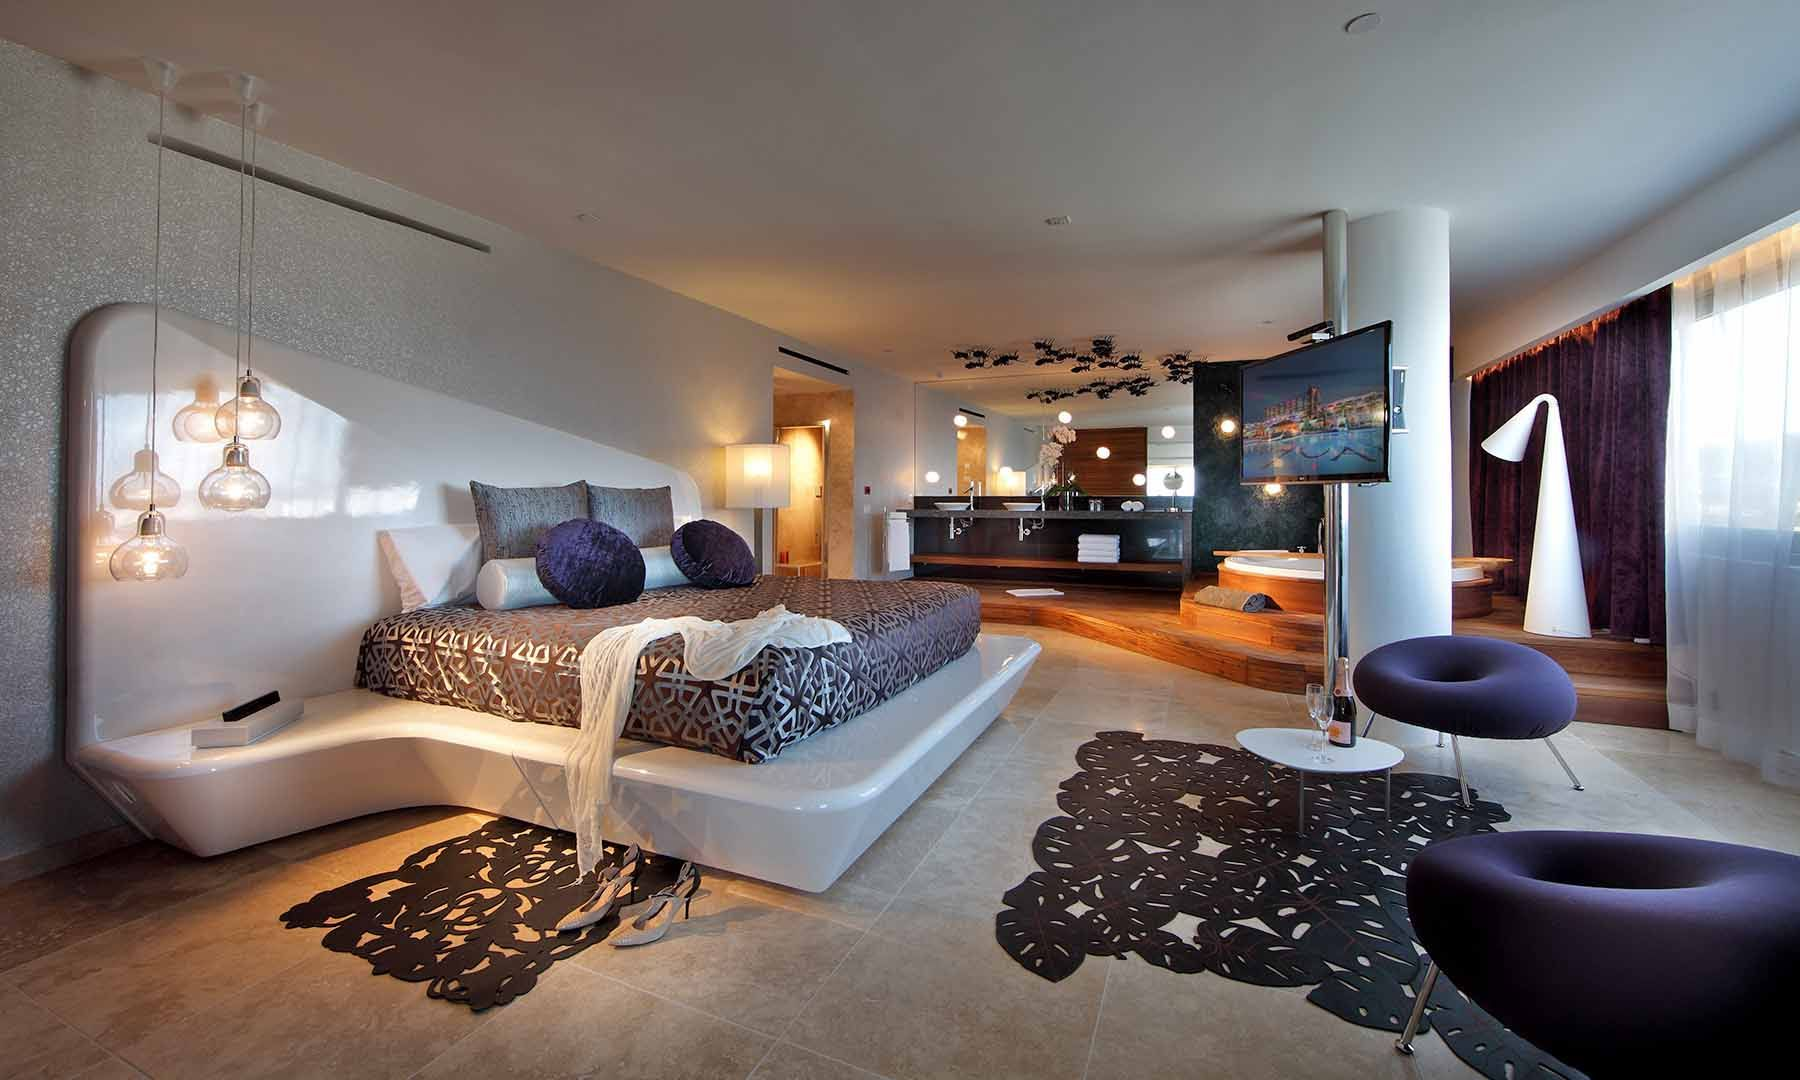 hotel bedrooms The Most Stunning Hotel Bedrooms in The World 4a147ebb160923f9c64d78eb034ed61d